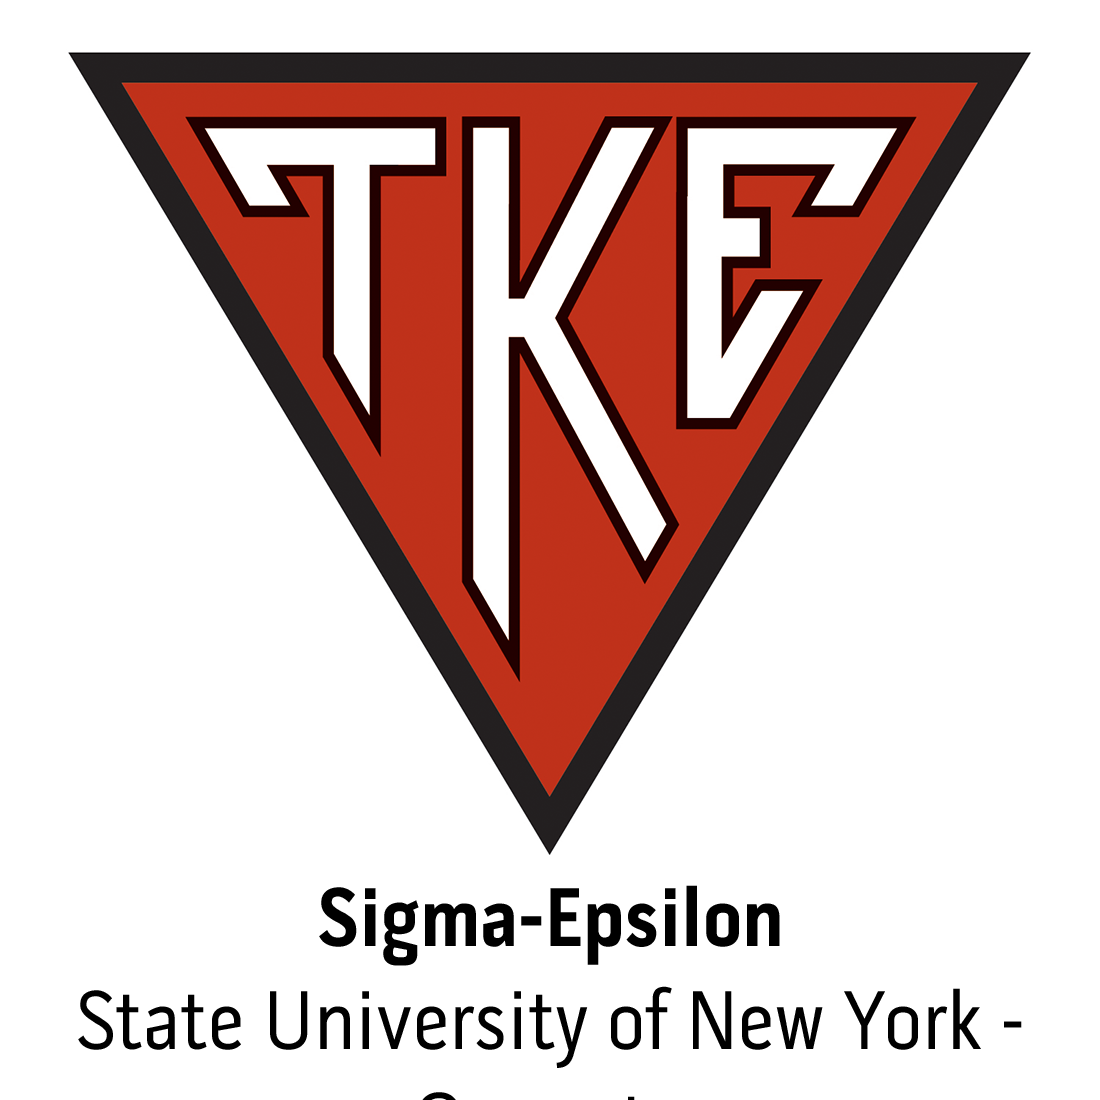 Sigma-Epsilon Colony at State University of New York - Oneonta